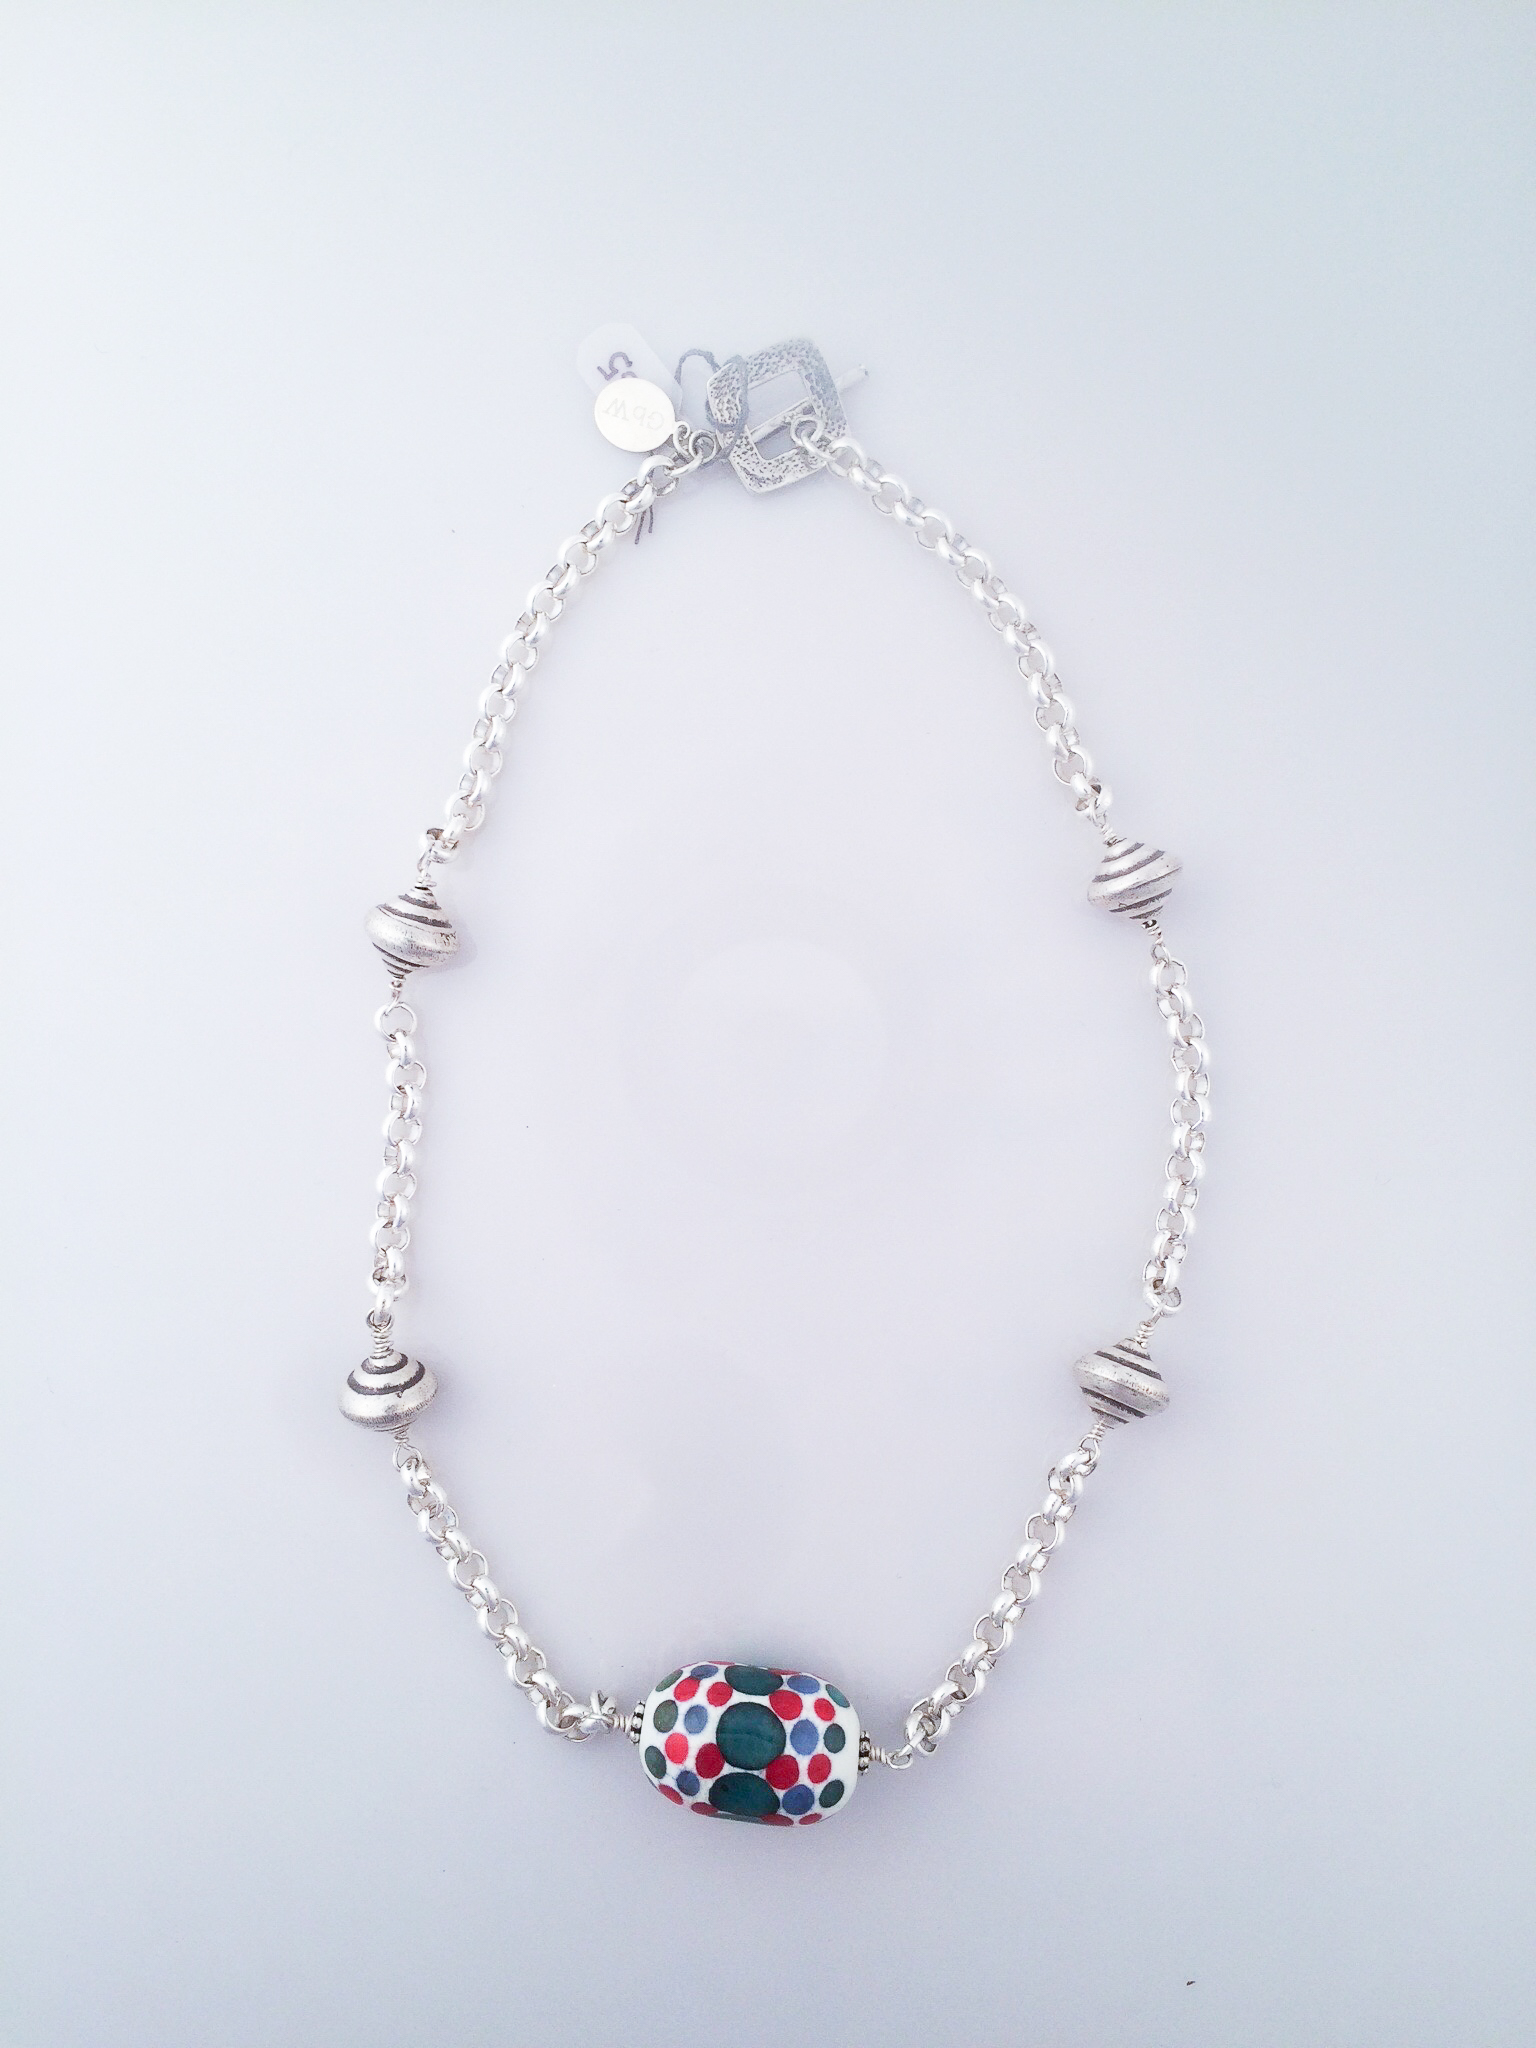 Silver Necklace with Focal Bead.jpg